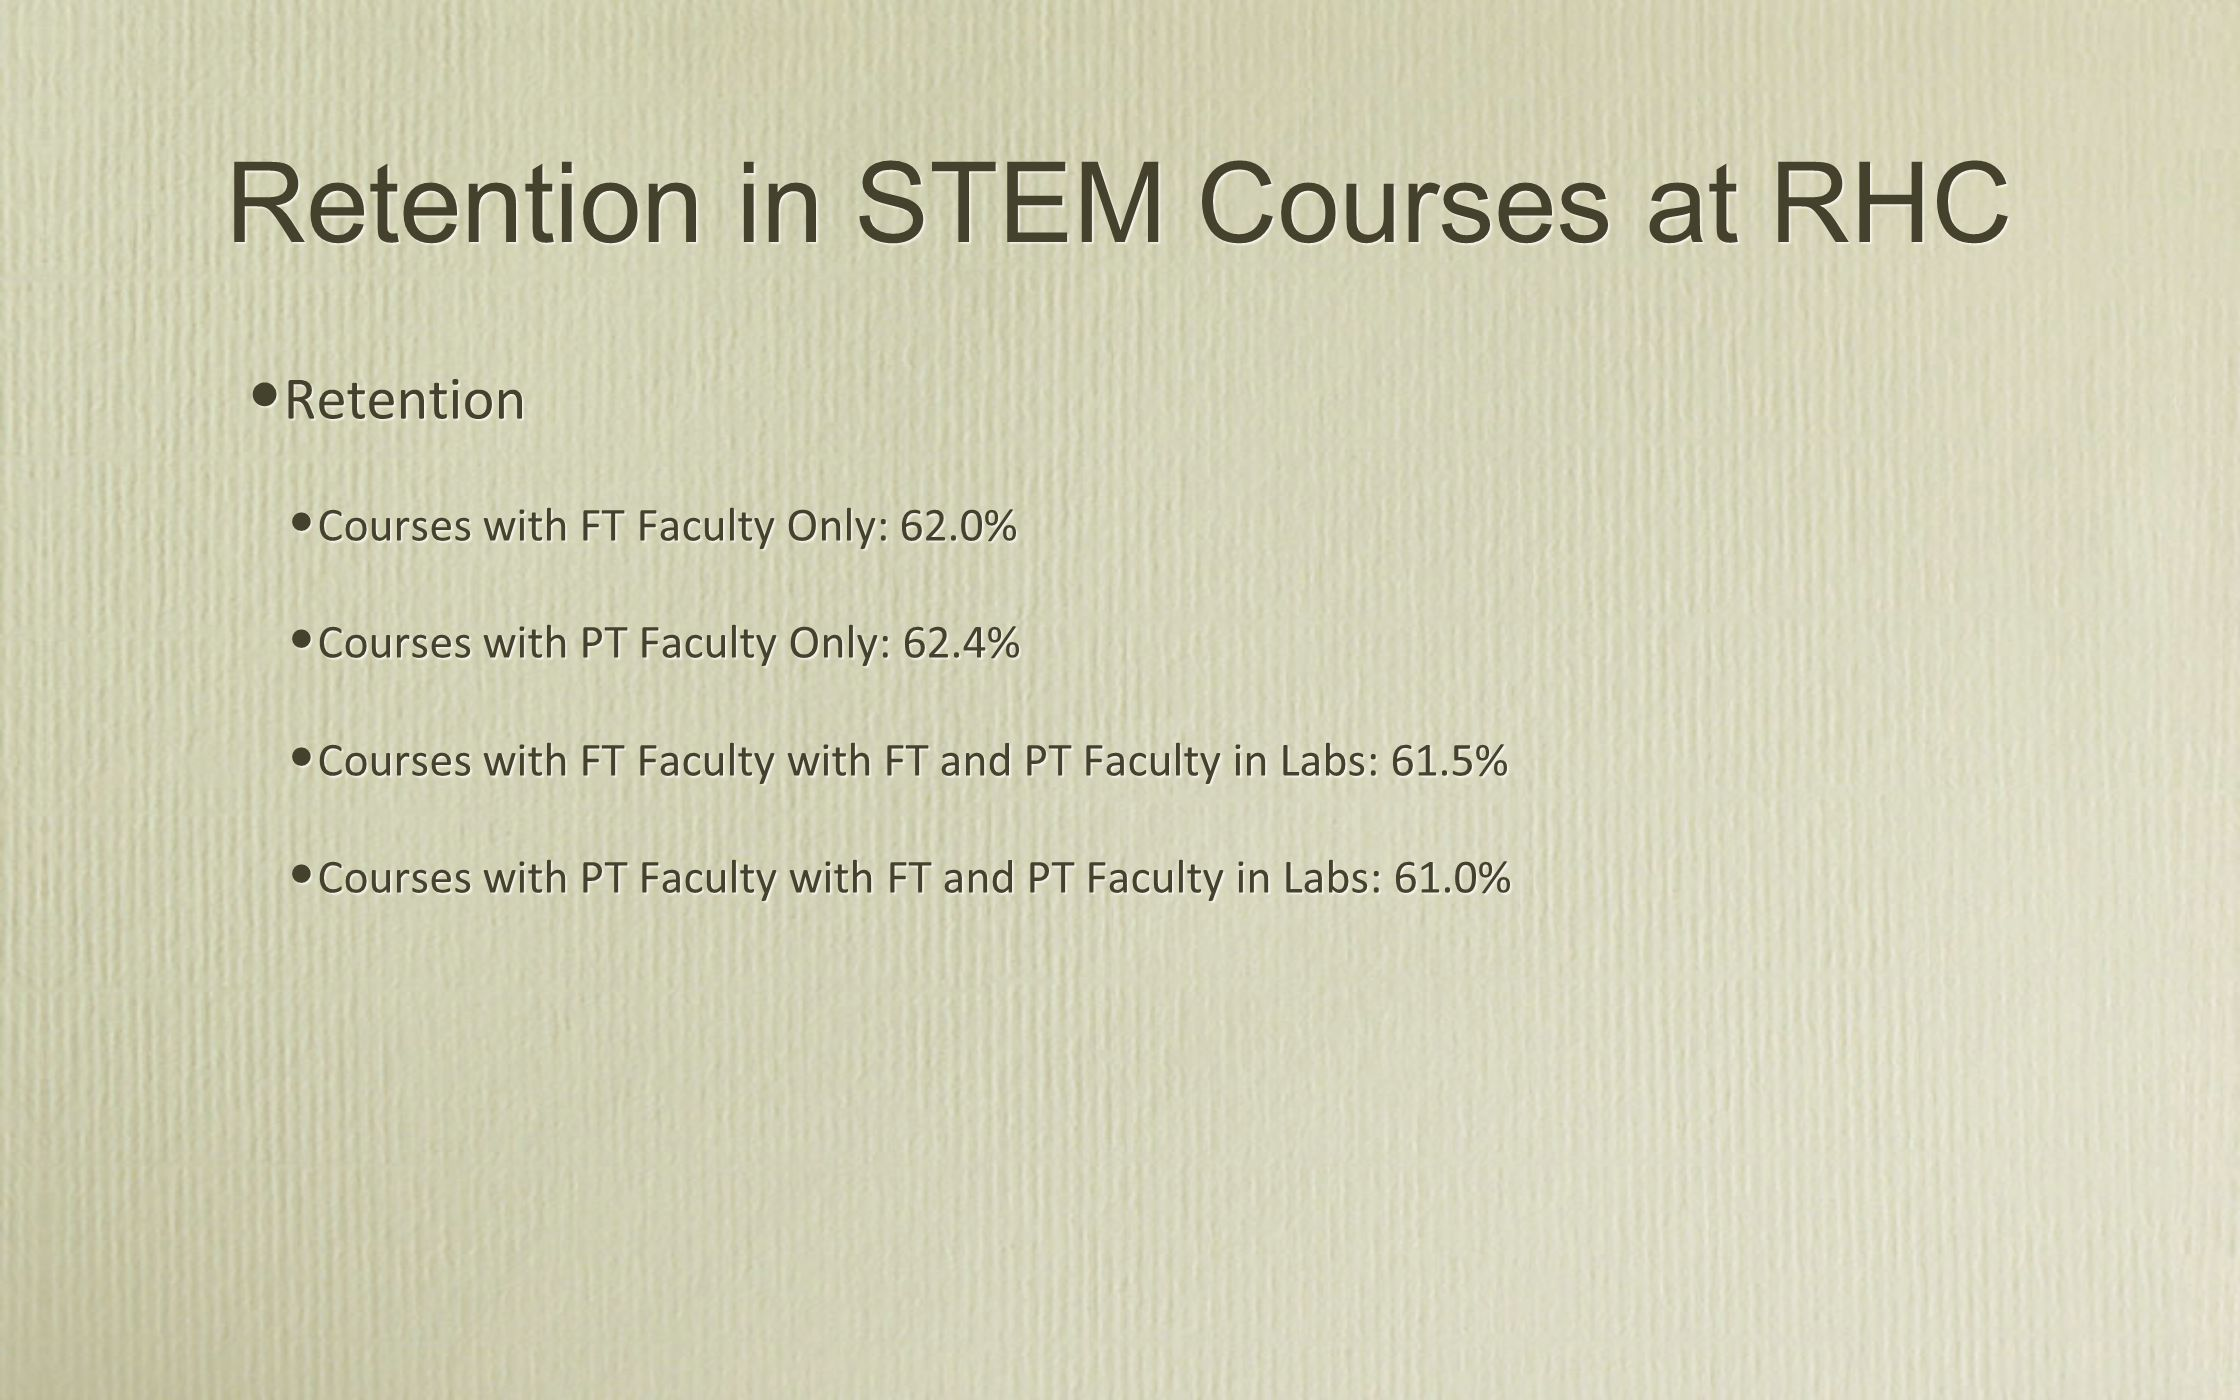 Success in STEM Courses at RHC Success Courses with FT Faculty Only: 60.3% Courses with PT Faculty Only: 62.4% Courses with FT Faculty with FT and PT Faculty in Labs: 60.0% Courses with PT Faculty with FT and PT Faculty in Labs: 60.9% Success Courses with FT Faculty Only: 60.3% Courses with PT Faculty Only: 62.4% Courses with FT Faculty with FT and PT Faculty in Labs: 60.0% Courses with PT Faculty with FT and PT Faculty in Labs: 60.9%